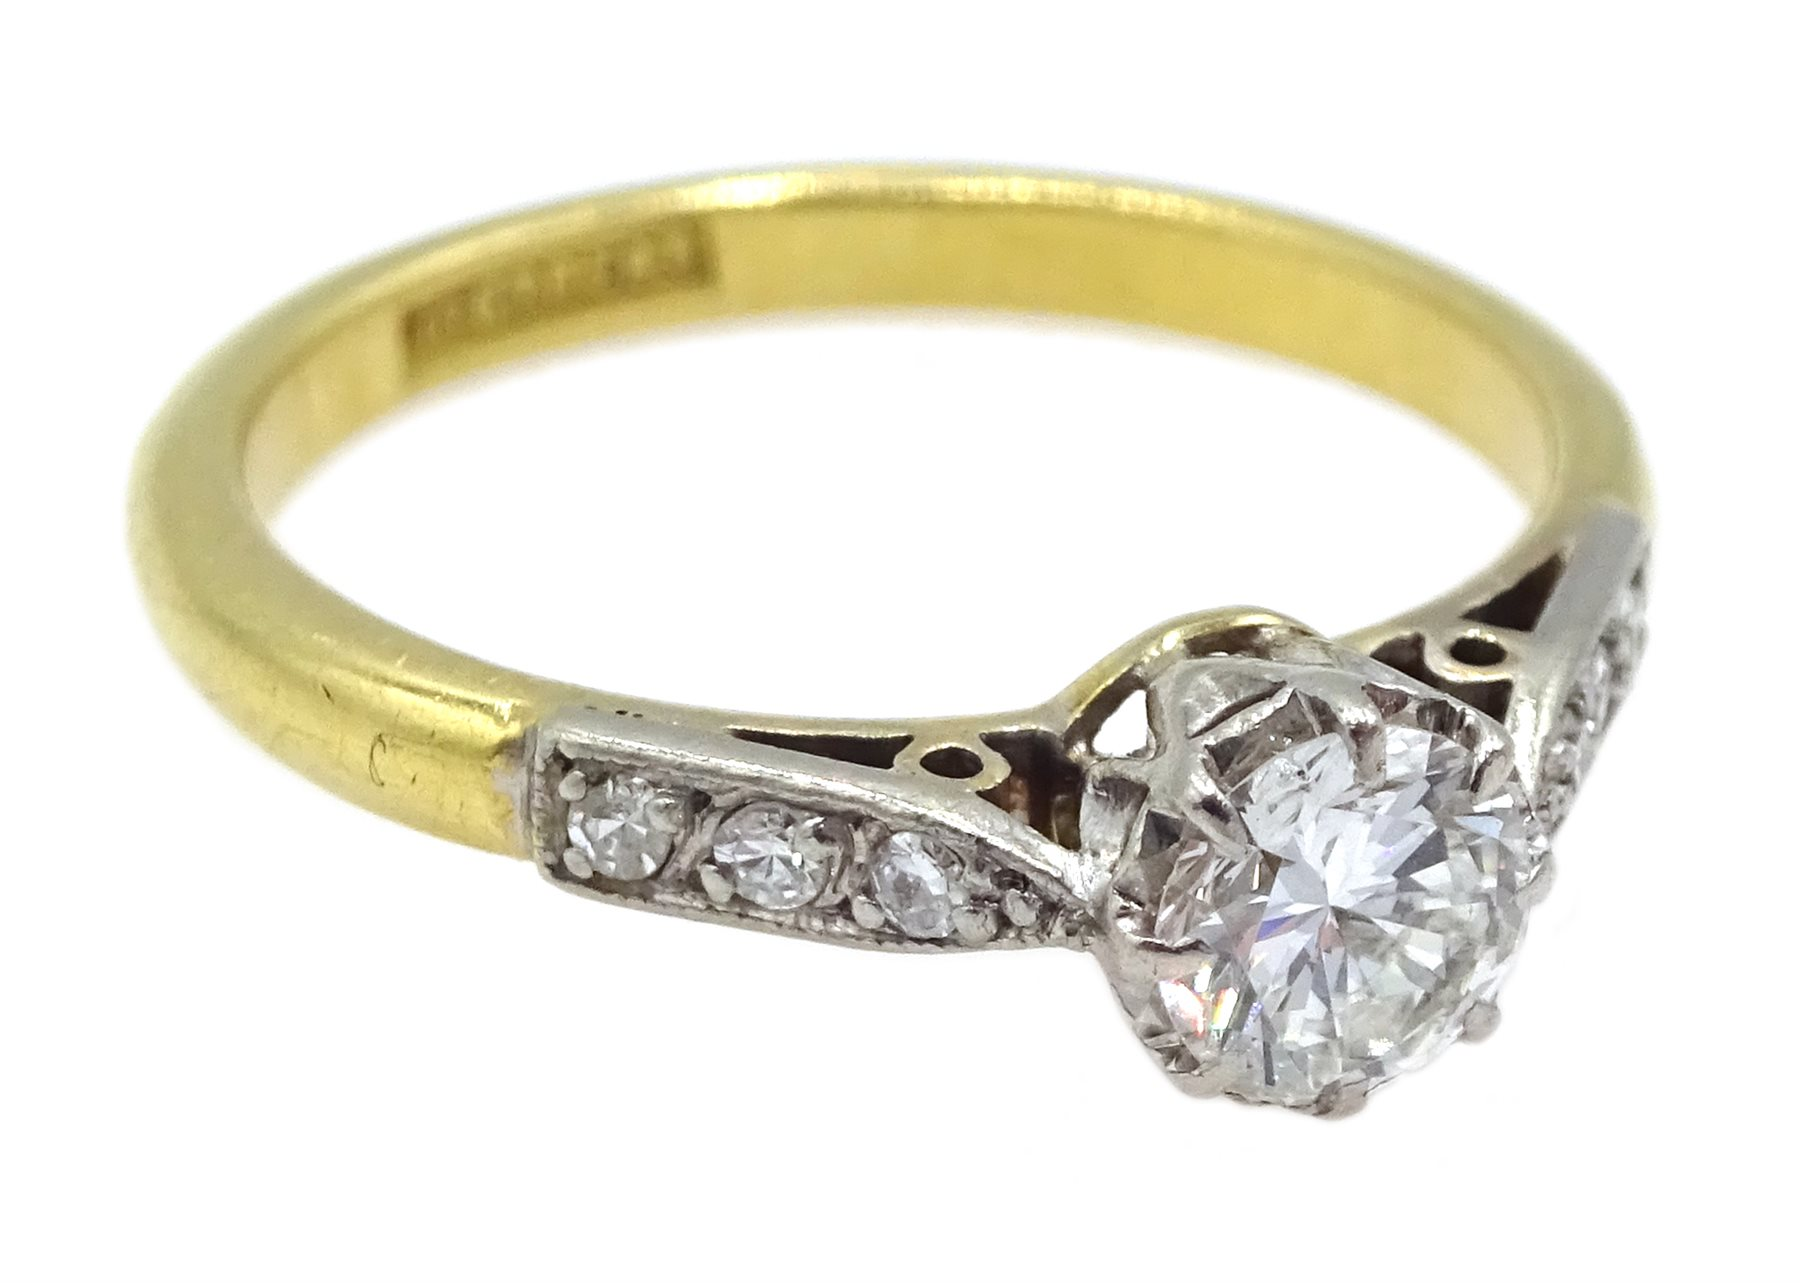 18ct gold single stone diamond ring, with diamond set shoulders, stamped 18 Plat, diamond approx 0.3 - Image 3 of 4